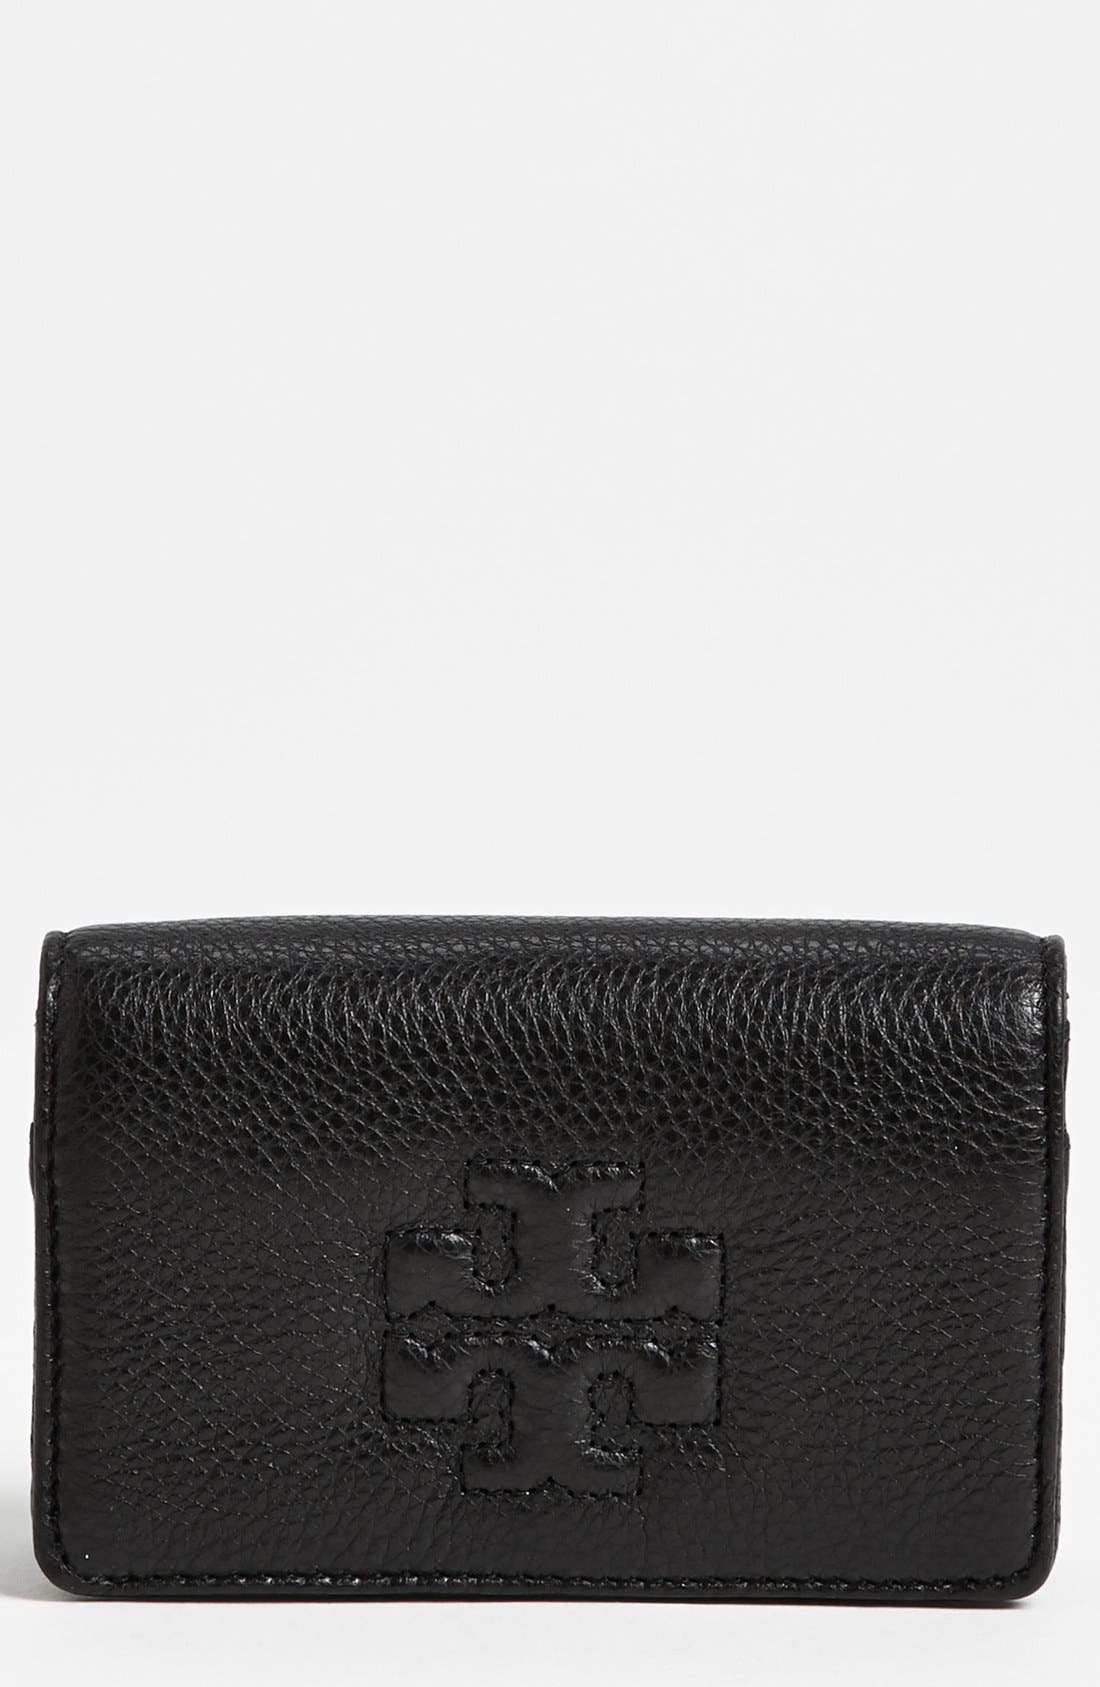 Main Image - Tory Burch 'Thea' Card Case